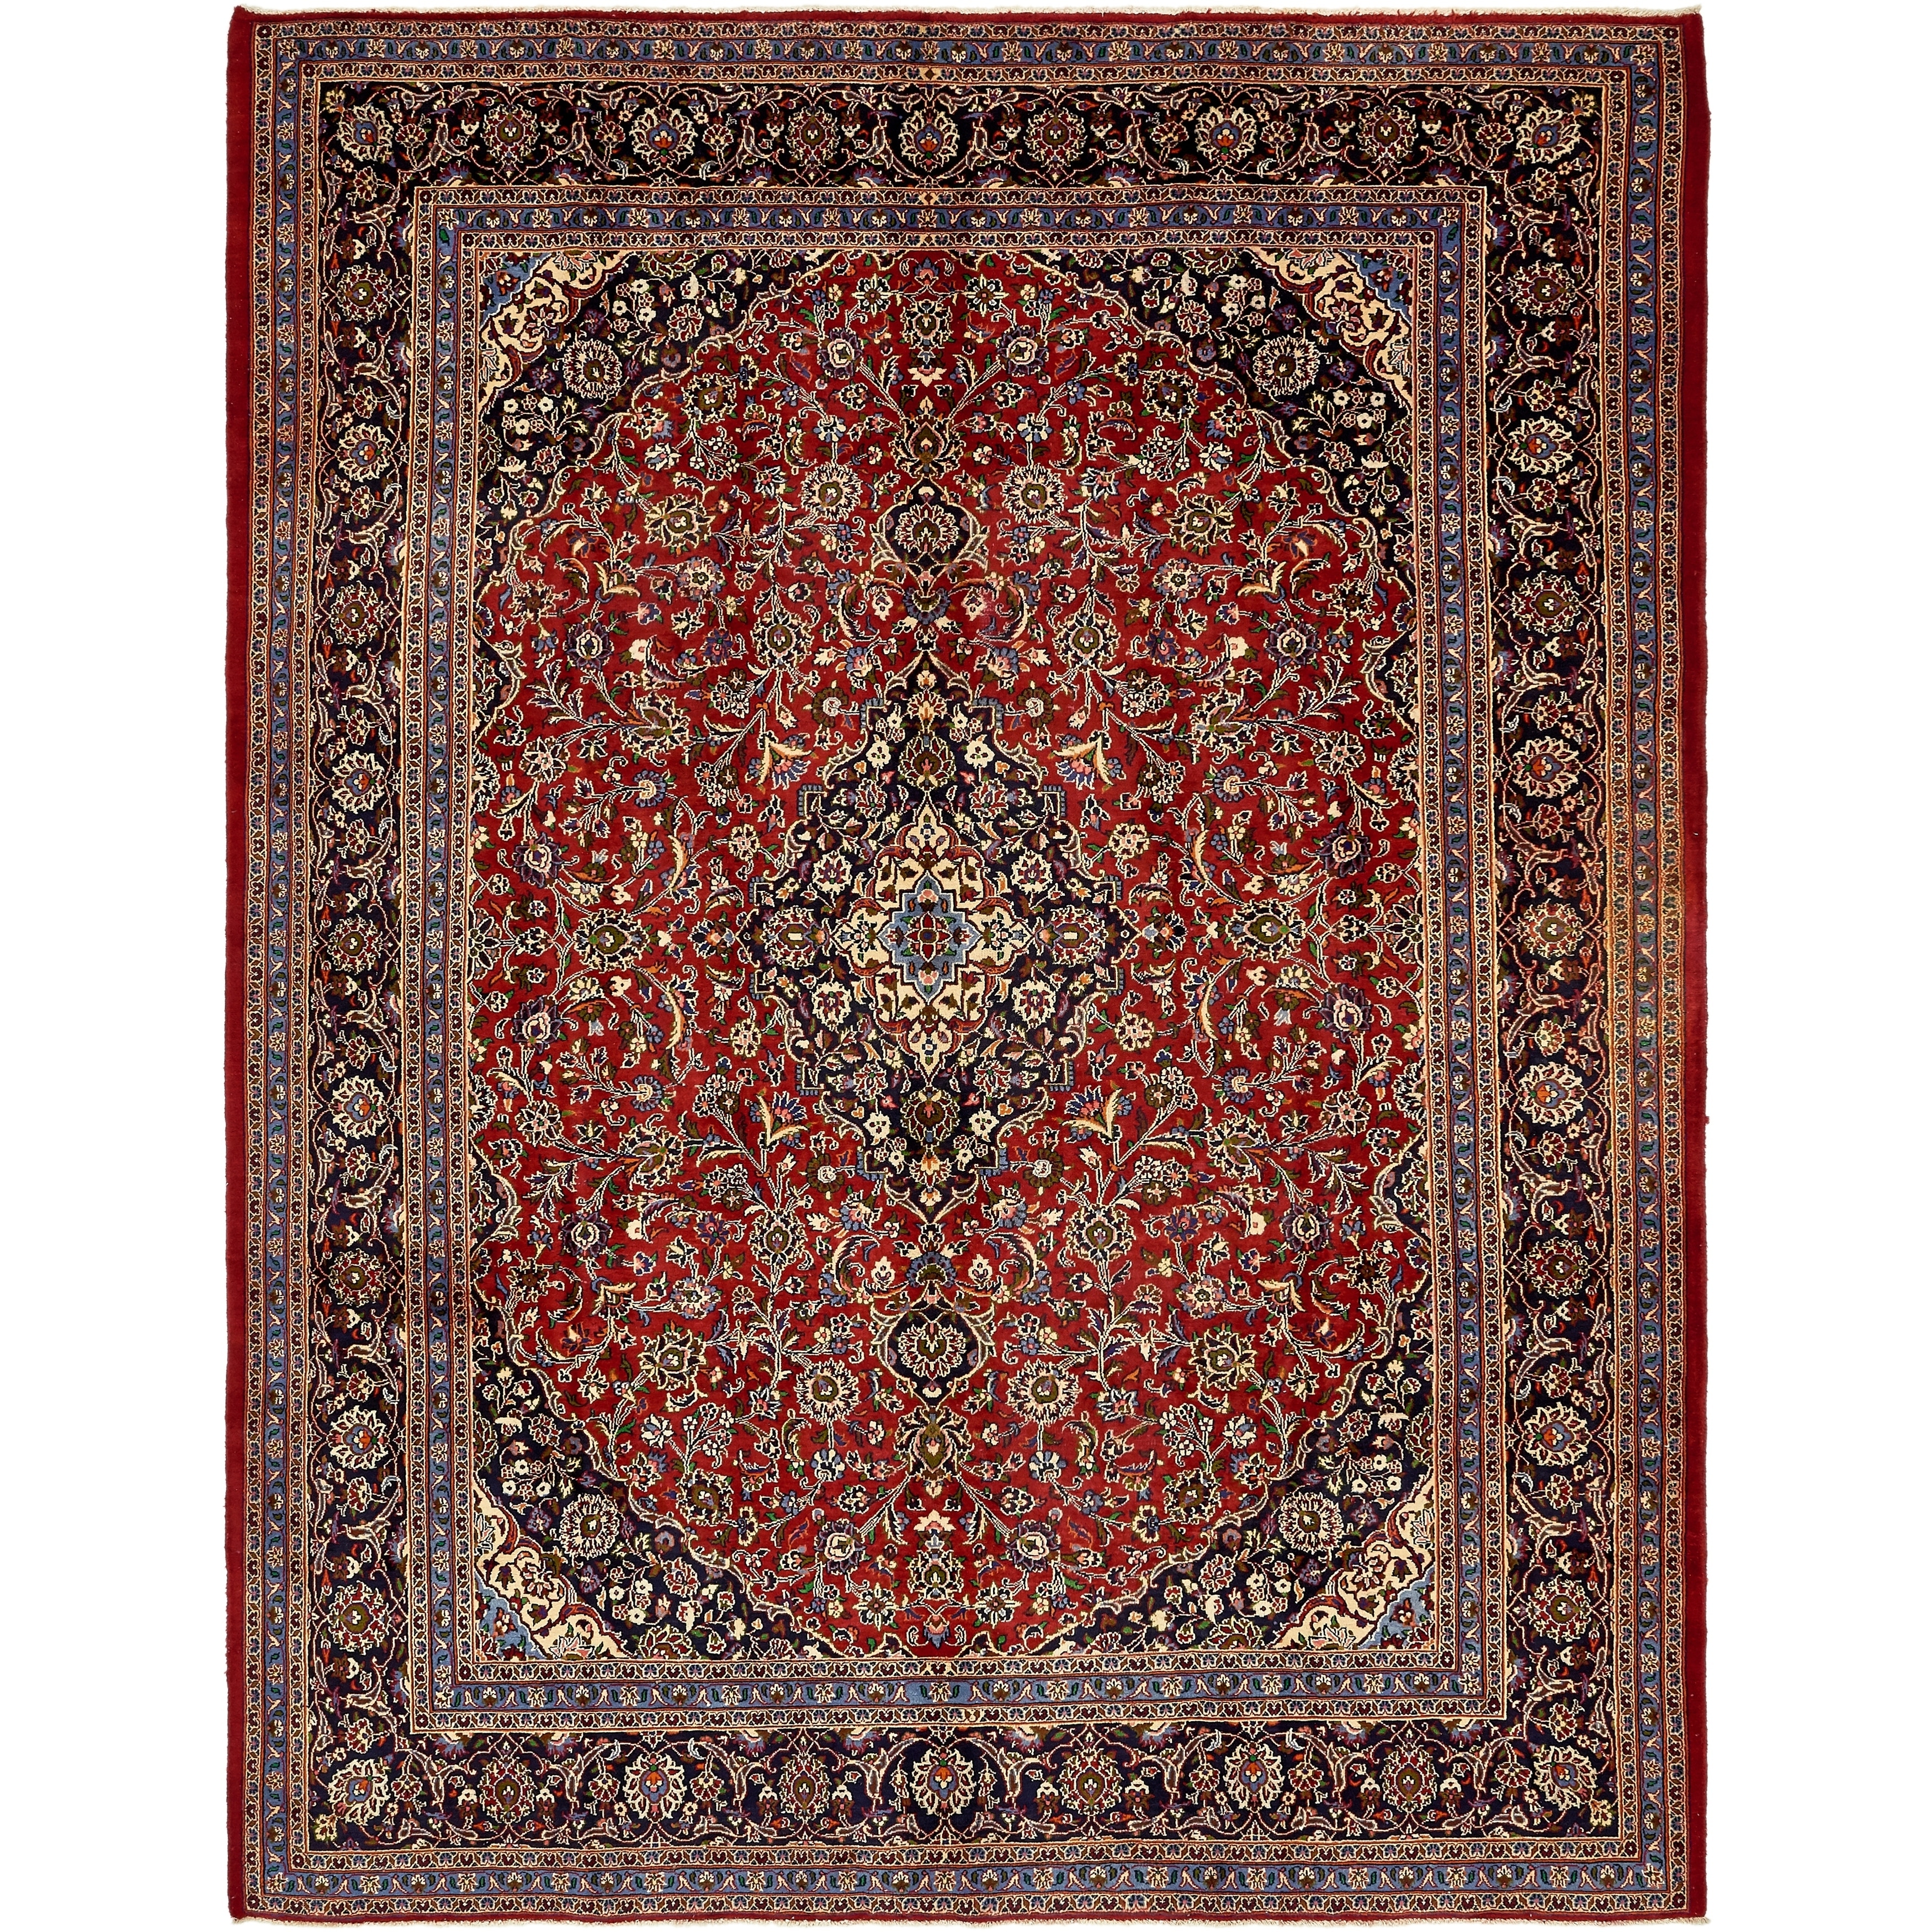 Hand Knotted Kashan Semi Antique Wool Area Rug - 9' 8 x 12' 10 (Red - 9' 8 x 12' 10)